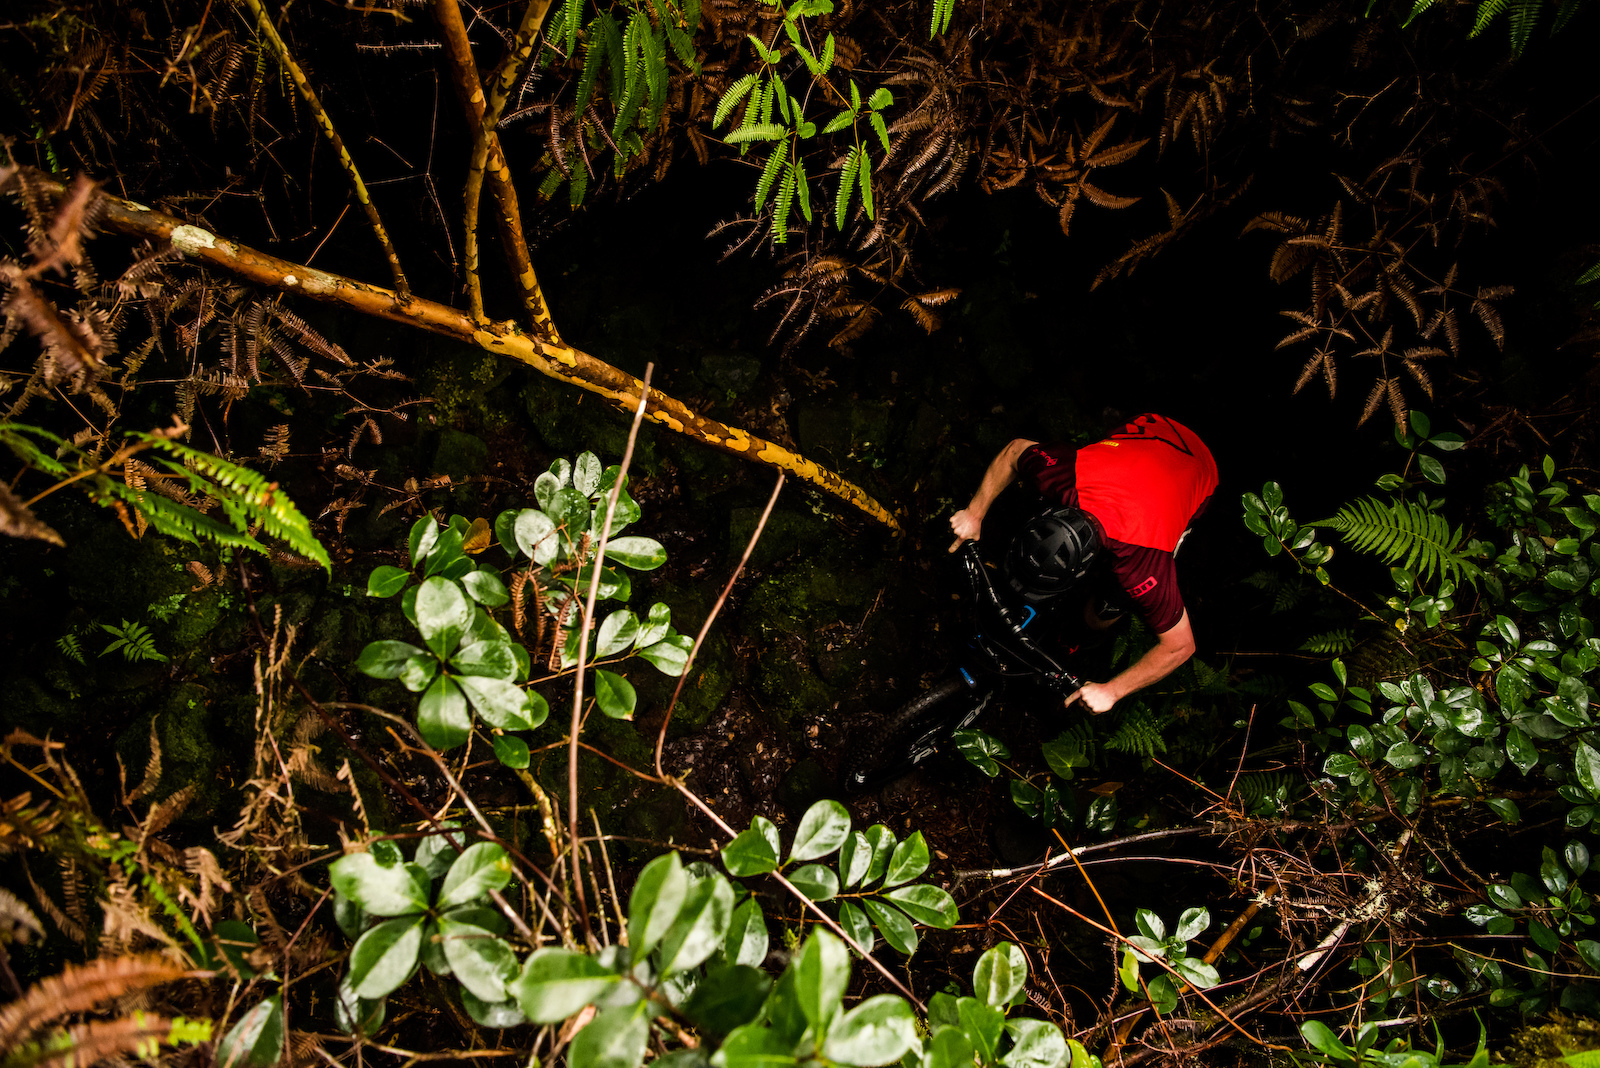 Mike rides through the thickest of thick jungle. Image by Bruno Long